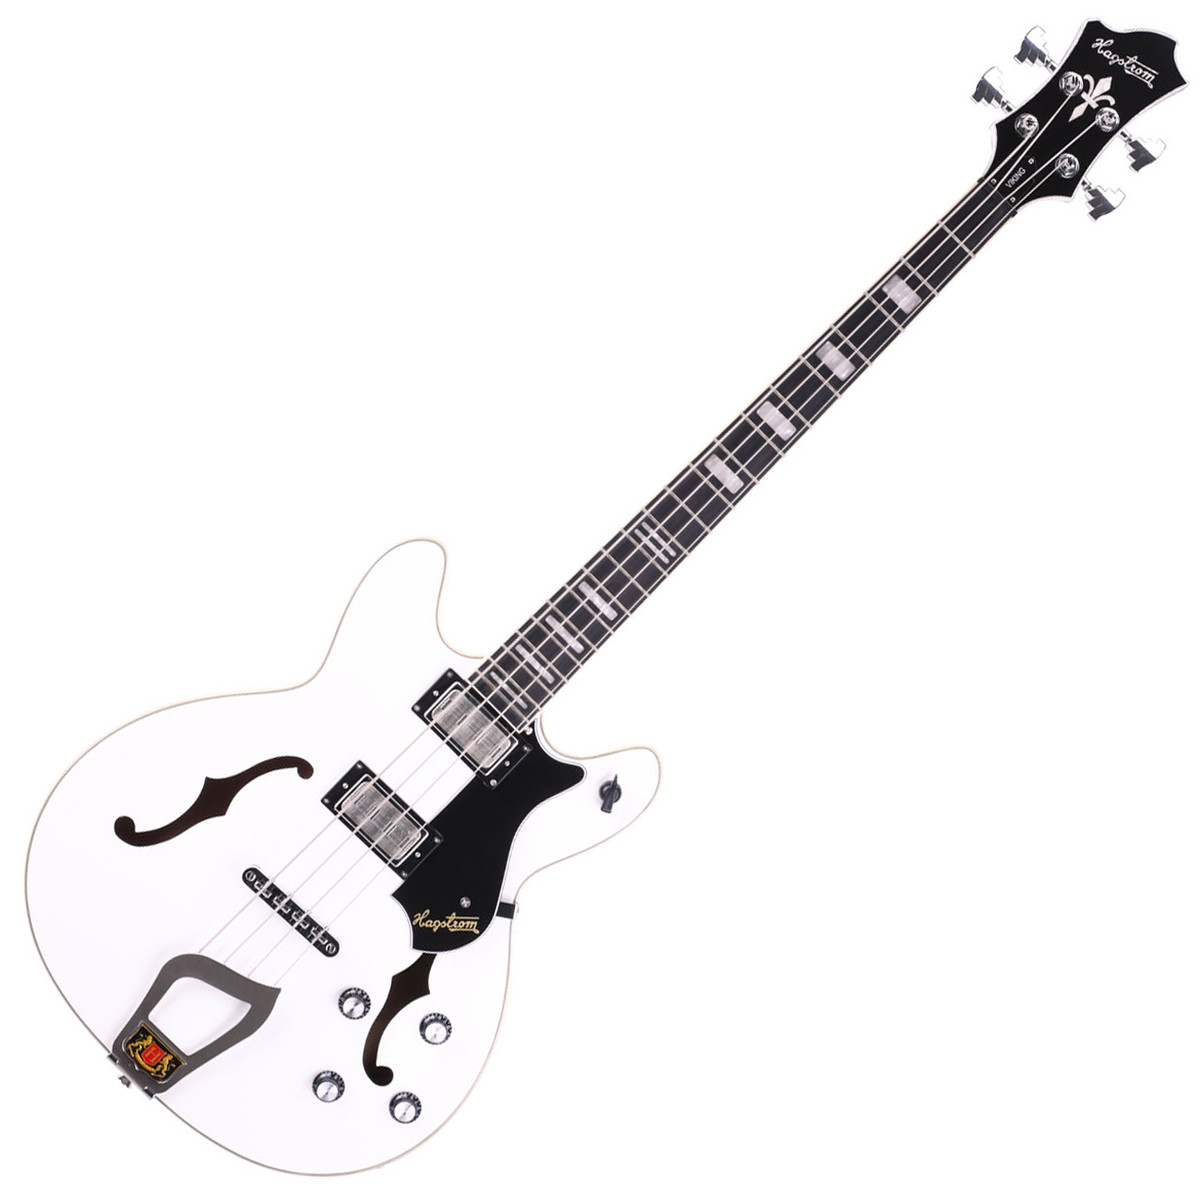 Hagstrom Viking Bass Short Scale Guitar White At Gear4music